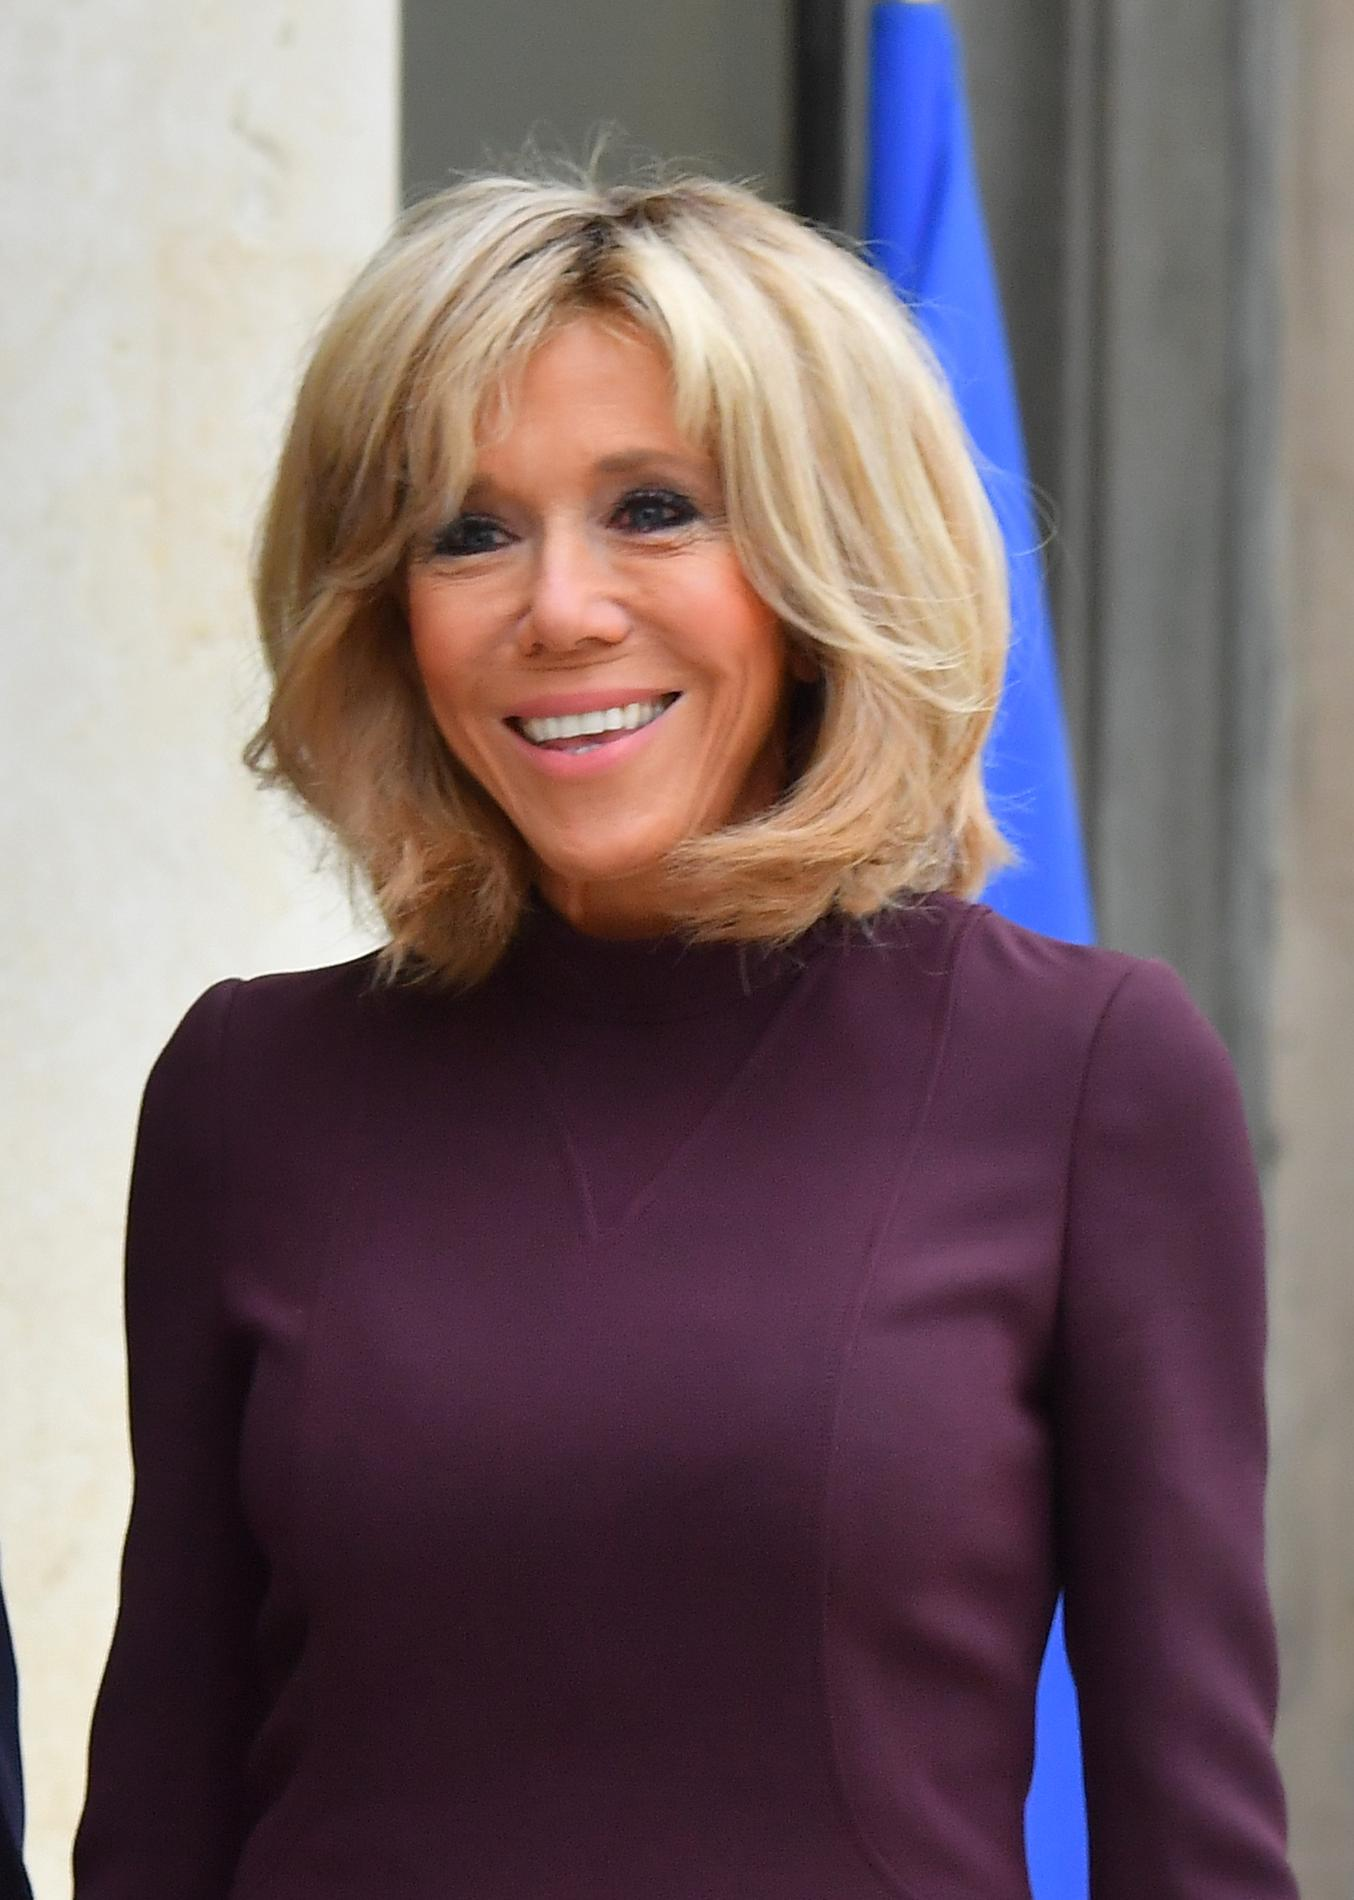 carr signature frange al atoire blond changeant la coiffure de brigitte macron pass e au. Black Bedroom Furniture Sets. Home Design Ideas